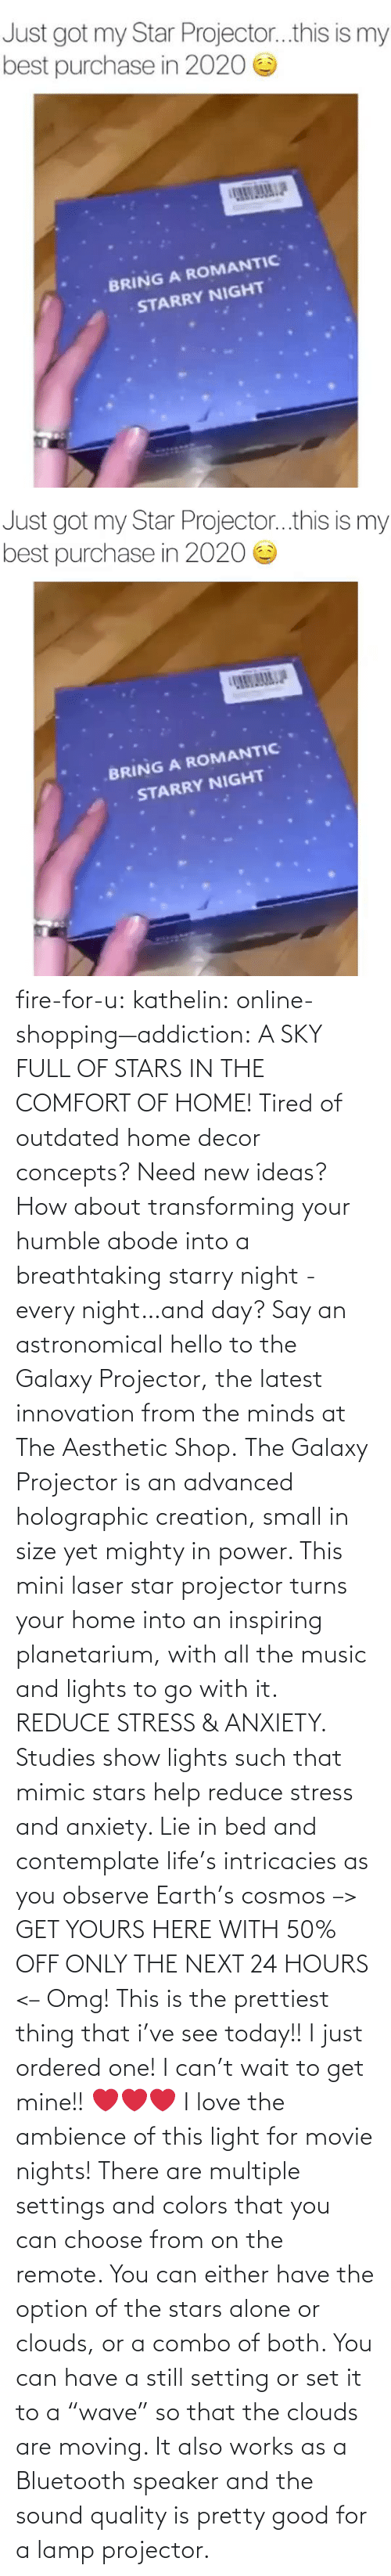 "Advanced: fire-for-u:  kathelin: online-shopping—addiction:  A SKY FULL OF STARS IN THE COMFORT OF HOME! Tired of outdated home decor concepts? Need new ideas? How about transforming your humble abode into a breathtaking starry night - every night…and day? Say an astronomical hello to the Galaxy Projector, the latest innovation from the minds at The Aesthetic Shop. The Galaxy Projector is an advanced holographic creation, small in size yet mighty in power. This mini laser star projector turns your home into an inspiring planetarium, with all the music and lights to go with it. REDUCE STRESS & ANXIETY. Studies show lights such that mimic stars help reduce stress and anxiety. Lie in bed and contemplate life's intricacies as you observe Earth's cosmos  –> GET YOURS HERE WITH 50% OFF ONLY THE NEXT 24 HOURS <–   Omg! This is the prettiest thing that i've see today!! I just ordered one! I can't wait to get mine!! ❤️️❤️️❤️️  I love the ambience of this light for movie nights! There are multiple settings and colors that you can choose from on the remote. You can either have the option of the stars alone or clouds, or a combo of both. You can have a still setting or set it to a ""wave"" so that the clouds are moving. It also works as a Bluetooth speaker and the sound quality is pretty good for a lamp projector."